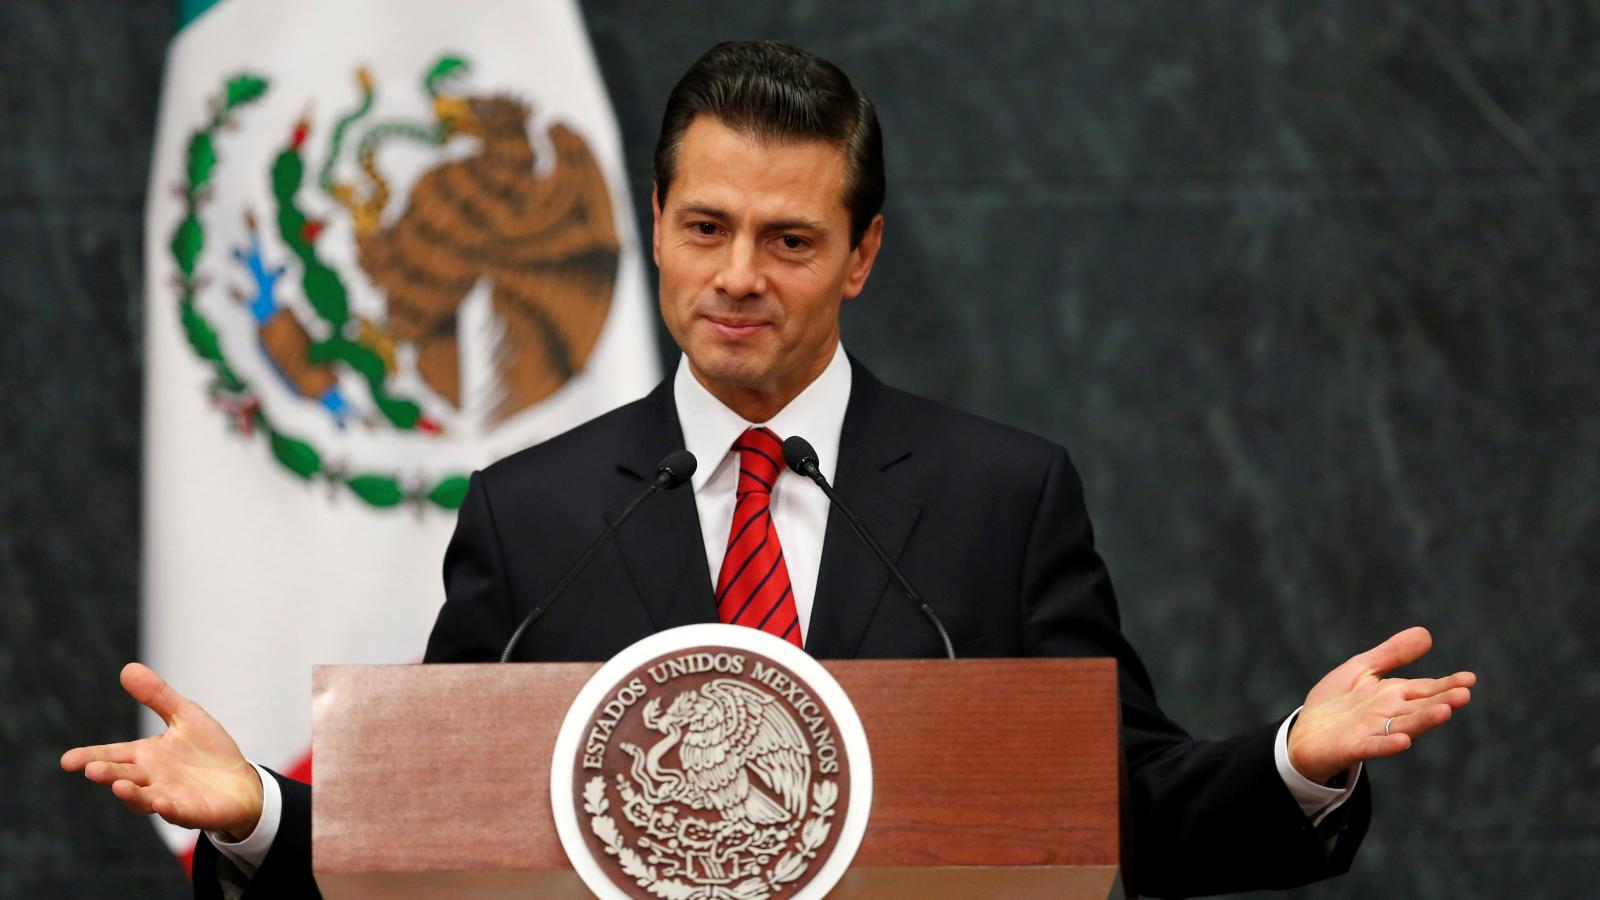 Image result for Enrique Pena Nieto